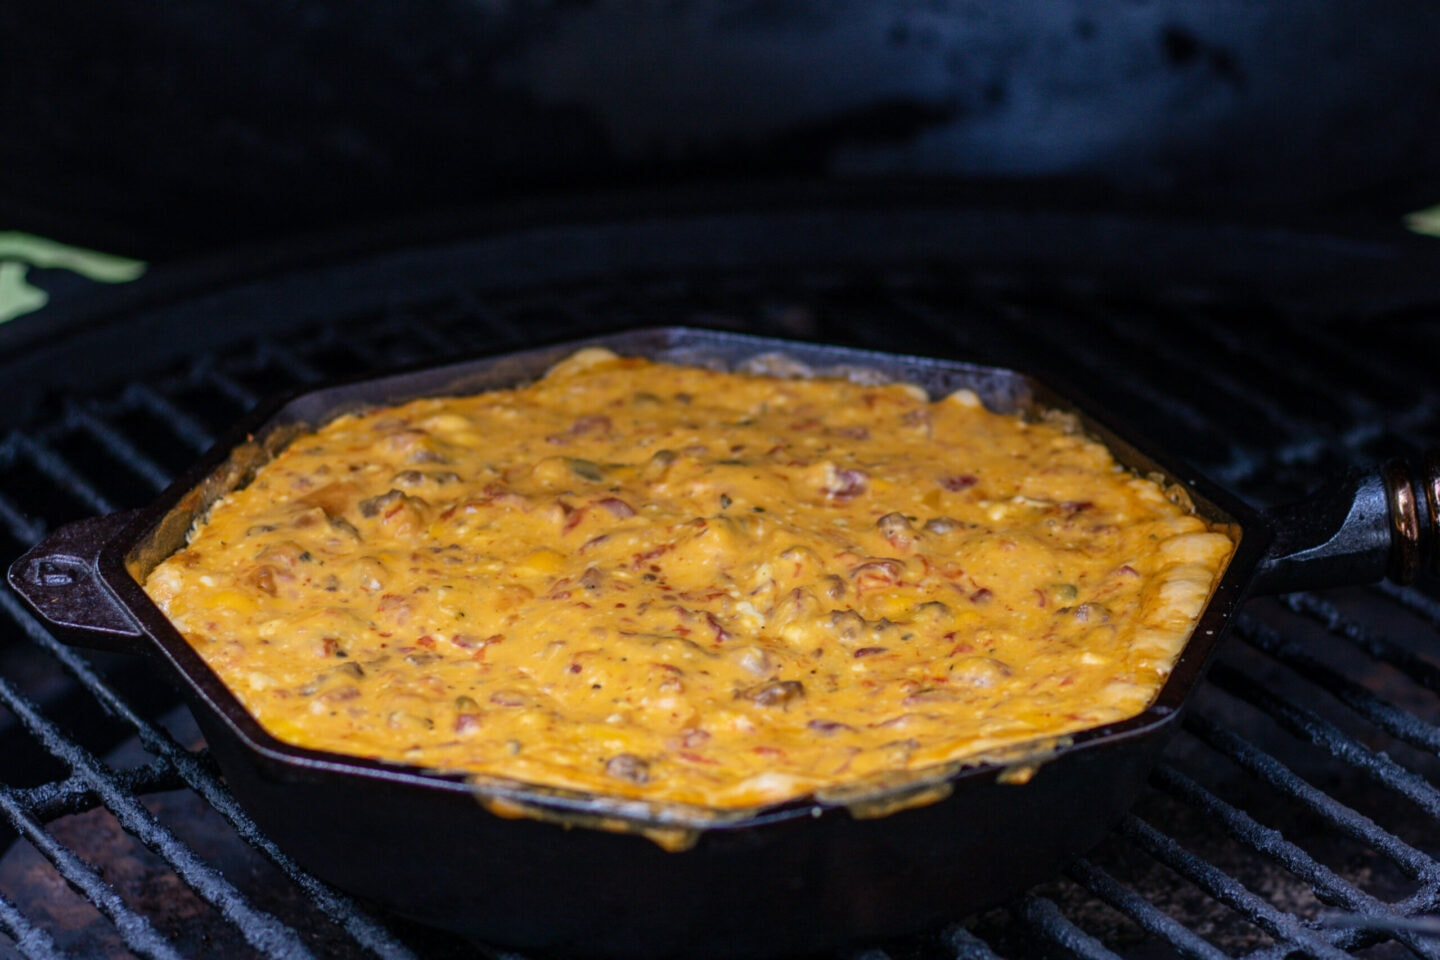 A skillet with melted cheese dip on the grill. The cheese dip is orange and slightly spilling over the edge. It is elected with bits of tomato and sausage.